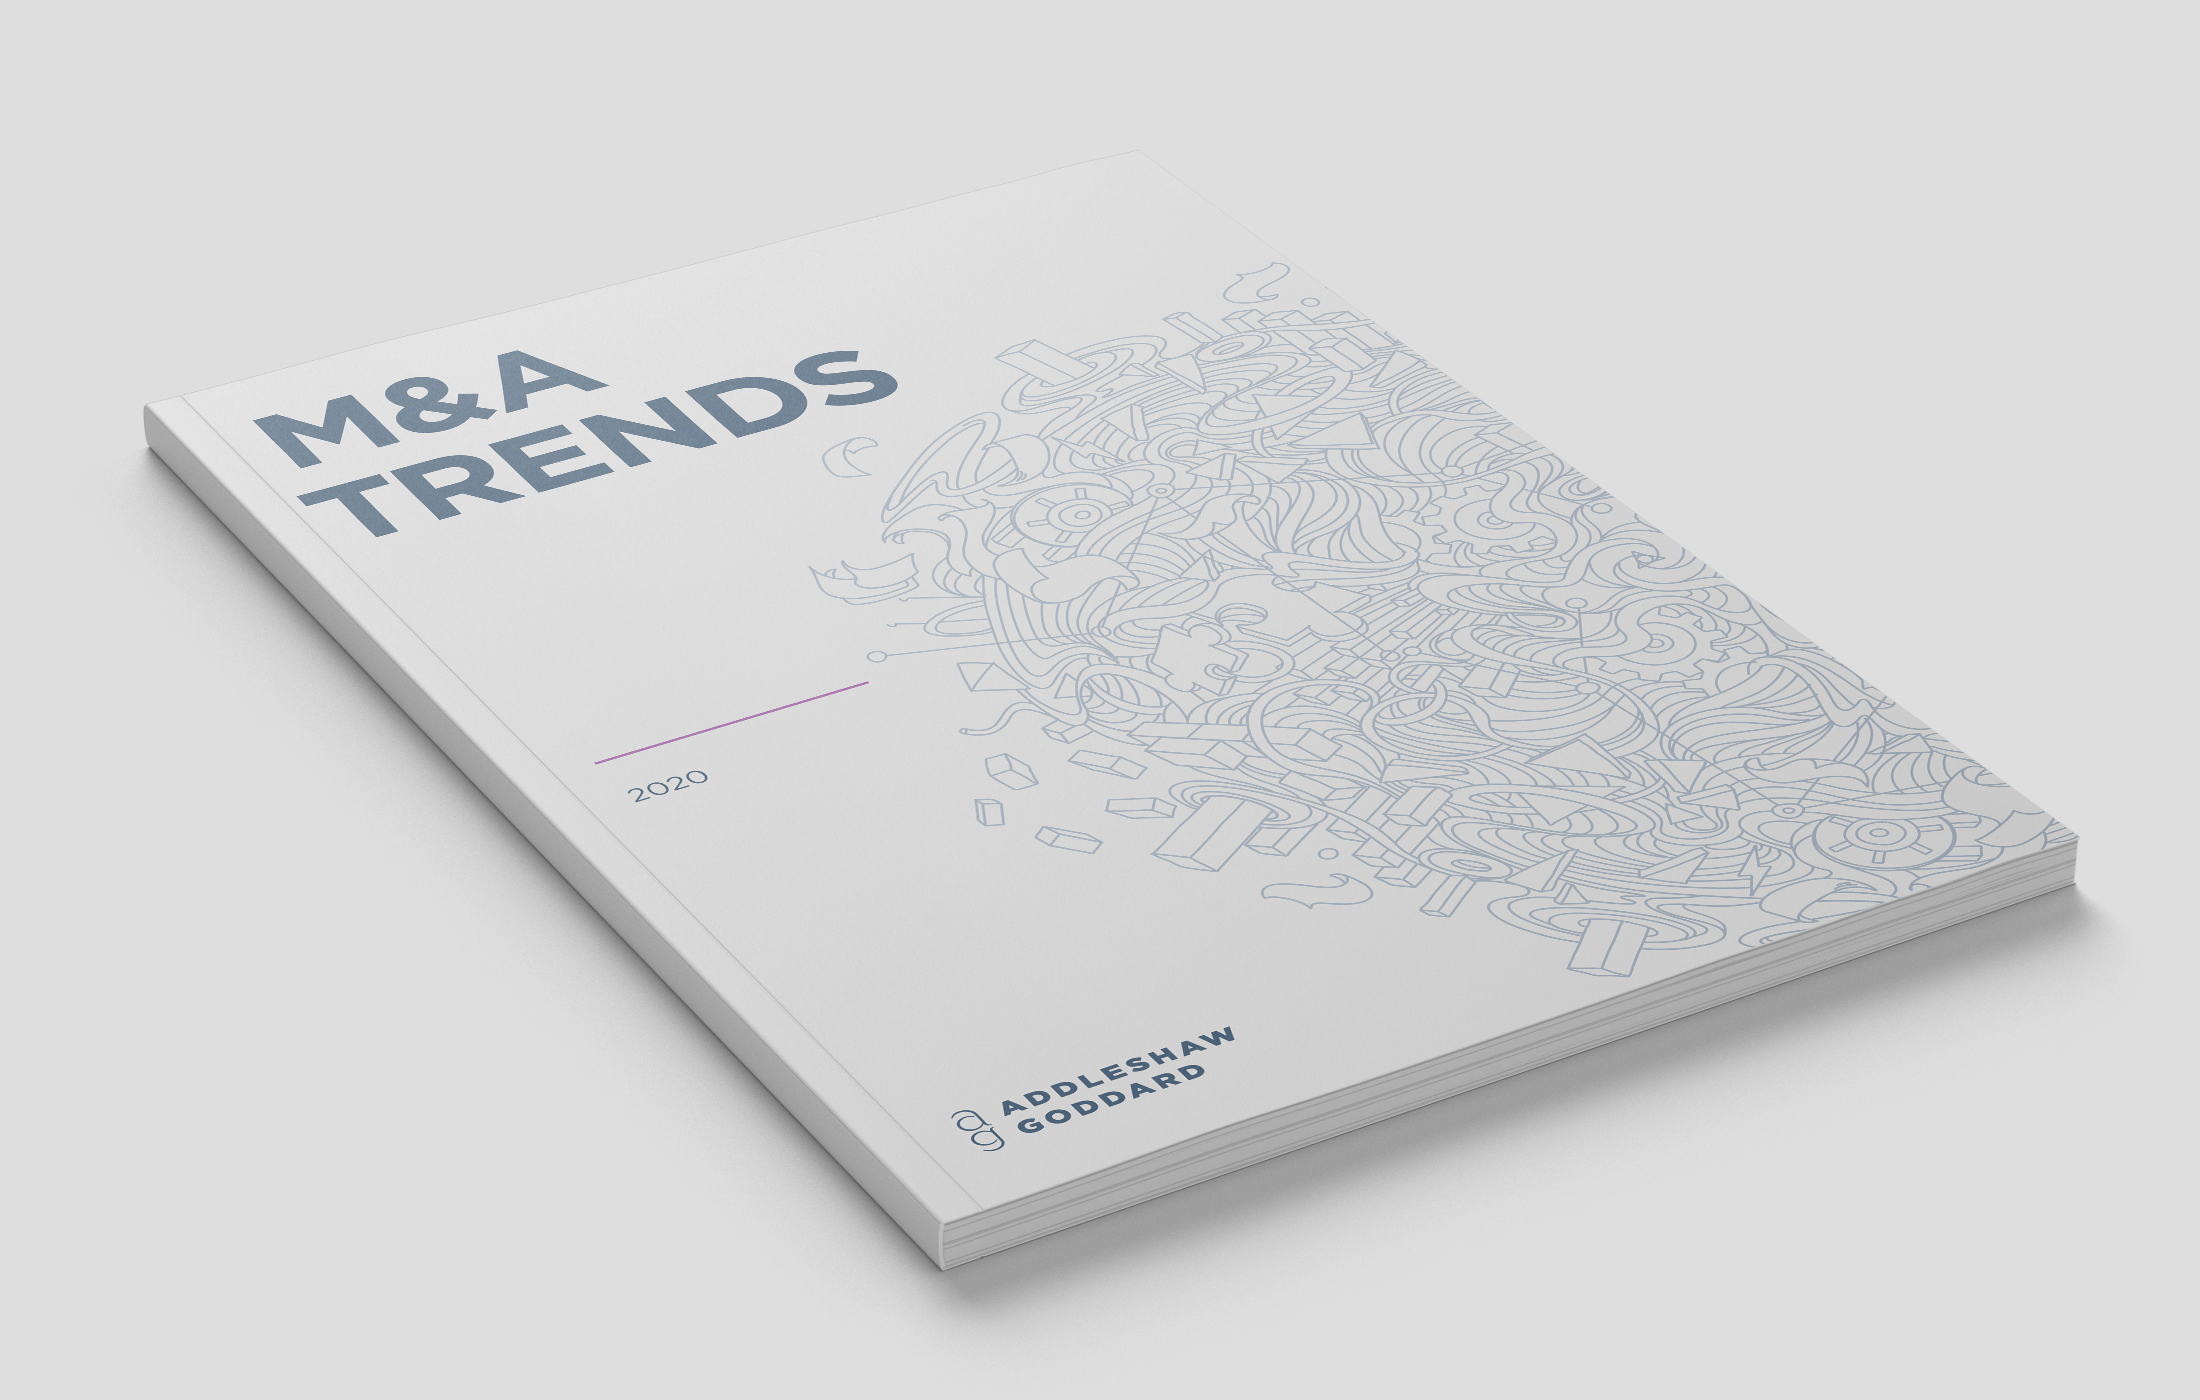 M&A Trends Report teaer